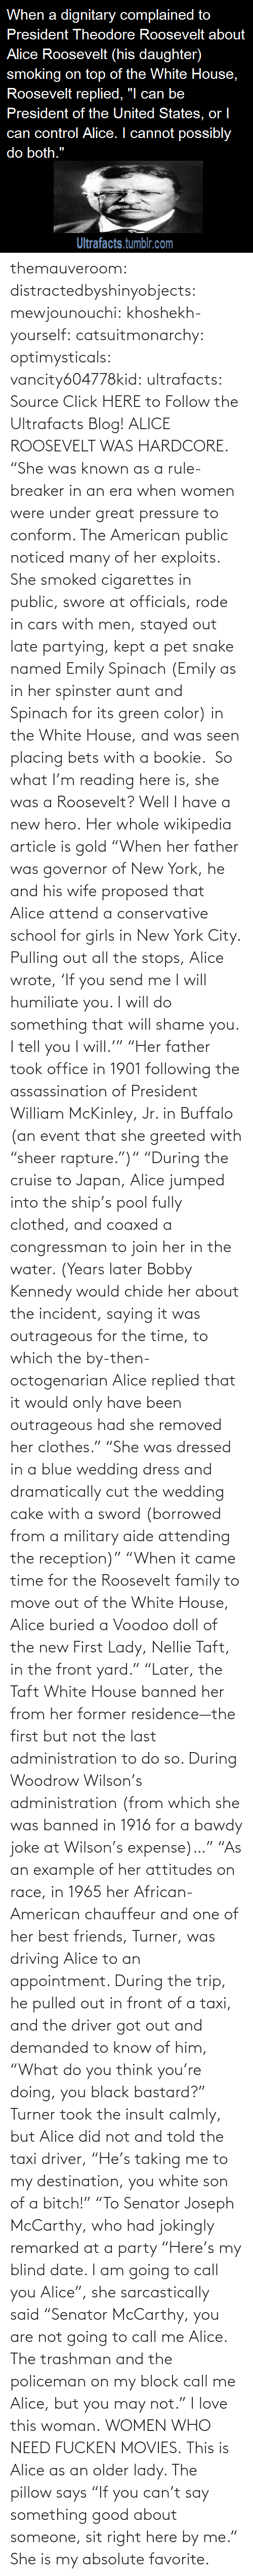 "Kept: themauveroom: distractedbyshinyobjects:  mewjounouchi:  khoshekh-yourself:  catsuitmonarchy:  optimysticals:  vancity604778kid:  ultrafacts:     Source Click HERE to Follow the Ultrafacts Blog!     ALICE ROOSEVELT WAS HARDCORE. ""She was known as a rule-breaker in an era when women were under great pressure to conform. The American public noticed many of her exploits. She smoked cigarettes in public, swore at officials, rode in cars with men, stayed out late partying, kept a pet snake named Emily Spinach (Emily as in her spinster aunt and Spinach for its green color) in the White House, and was seen placing bets with a bookie.    So what I'm reading here is, she was a Roosevelt?  Well I have a new hero.  Her whole wikipedia article is gold ""When her father was governor of New York, he and his wife proposed that Alice attend a conservative school for girls in New York City. Pulling out all the stops, Alice wrote, 'If you send me I will humiliate you. I will do something that will shame you. I tell you I will.'"" ""Her father took office in 1901 following the assassination of President William McKinley, Jr. in Buffalo (an event that she greeted with ""sheer rapture."")"" ""During the cruise to Japan, Alice jumped into the ship's pool fully clothed, and coaxed a congressman to join her in the water. (Years later Bobby Kennedy would chide her about the incident, saying it was outrageous for the time, to which the by-then-octogenarian Alice replied that it would only have been outrageous had she removed her clothes."" ""She was dressed in a blue wedding dress and dramatically cut the wedding cake with a sword (borrowed from a military aide attending the reception)"" ""When it came time for the Roosevelt family to move out of the White House, Alice buried a Voodoo doll of the new First Lady, Nellie Taft, in the front yard."" ""Later, the Taft White House banned her from her former residence—the first but not the last administration to do so. During Woodrow Wilson's administration (from which she was banned in 1916 for a bawdy joke at Wilson's expense)…"" ""As an example of her attitudes on race, in 1965 her African-American chauffeur and one of her best friends, Turner, was driving Alice to an appointment. During the trip, he pulled out in front of a taxi, and the driver got out and demanded to know of him, ""What do you think you're doing, you black bastard?"" Turner took the insult calmly, but Alice did not and told the taxi driver, ""He's taking me to my destination, you white son of a bitch!"" ""To Senator Joseph McCarthy, who had jokingly remarked at a party ""Here's my blind date. I am going to call you Alice"", she sarcastically said ""Senator McCarthy, you are not going to call me Alice. The trashman and the policeman on my block call me Alice, but you may not.""  I love this woman.  WOMEN WHO NEED FUCKEN MOVIES.   This is Alice as an older lady. The pillow says ""If you can't say something good about someone, sit right here by me.""  She is my absolute favorite."